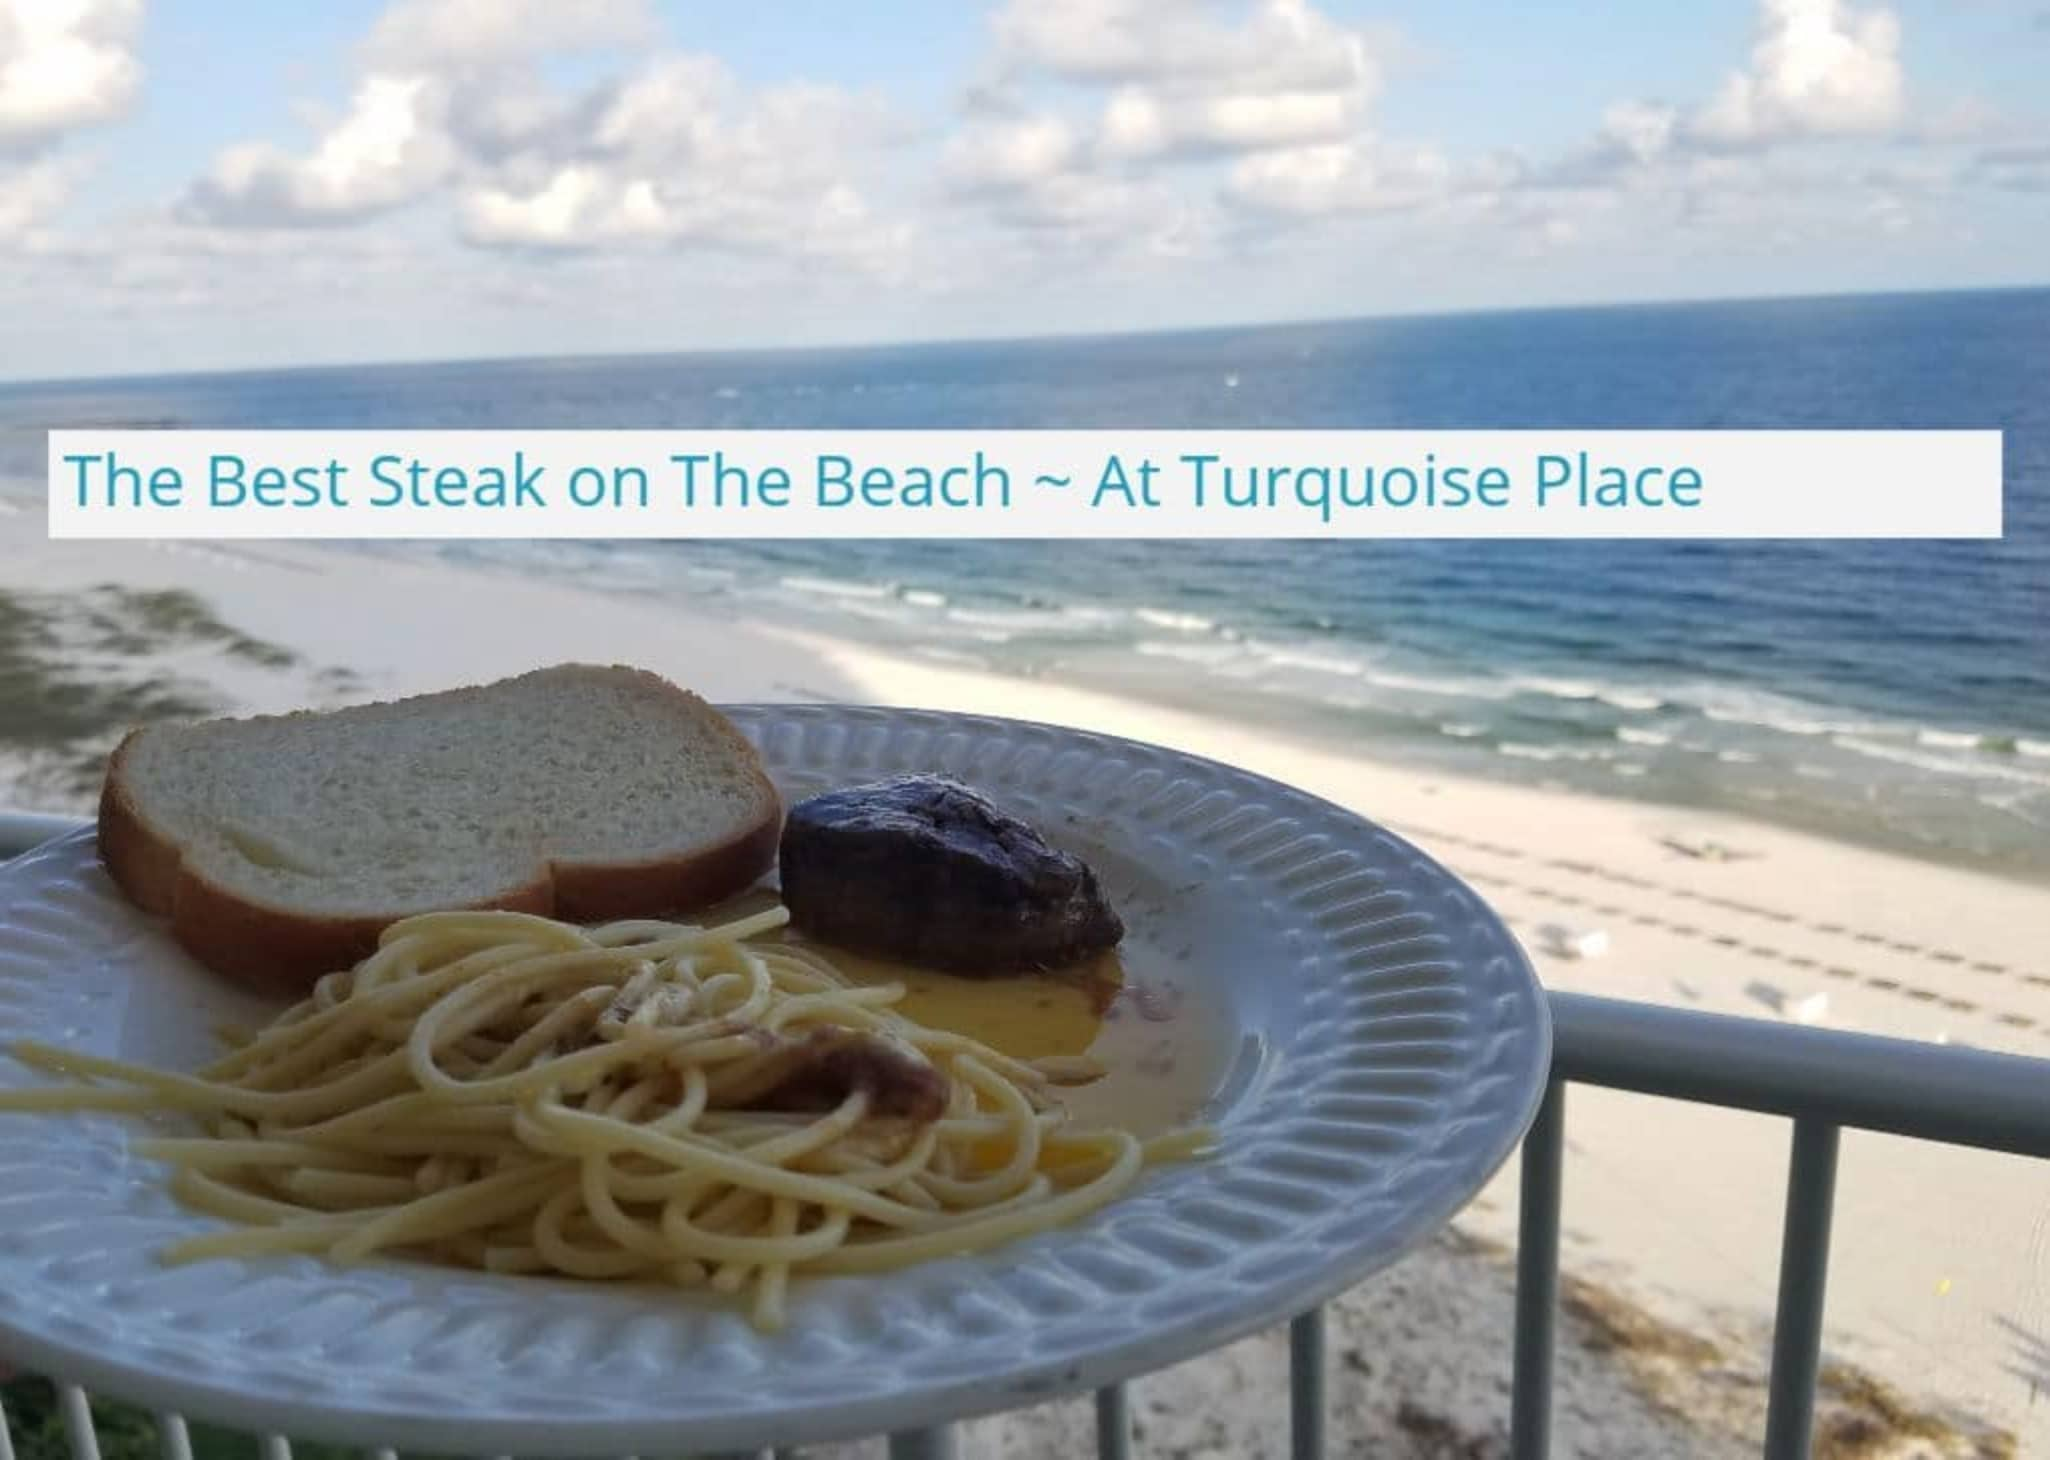 The Best Steak On The Beach With Spectrum Resorts At Turquoise Place In Orange Beach, Alabama